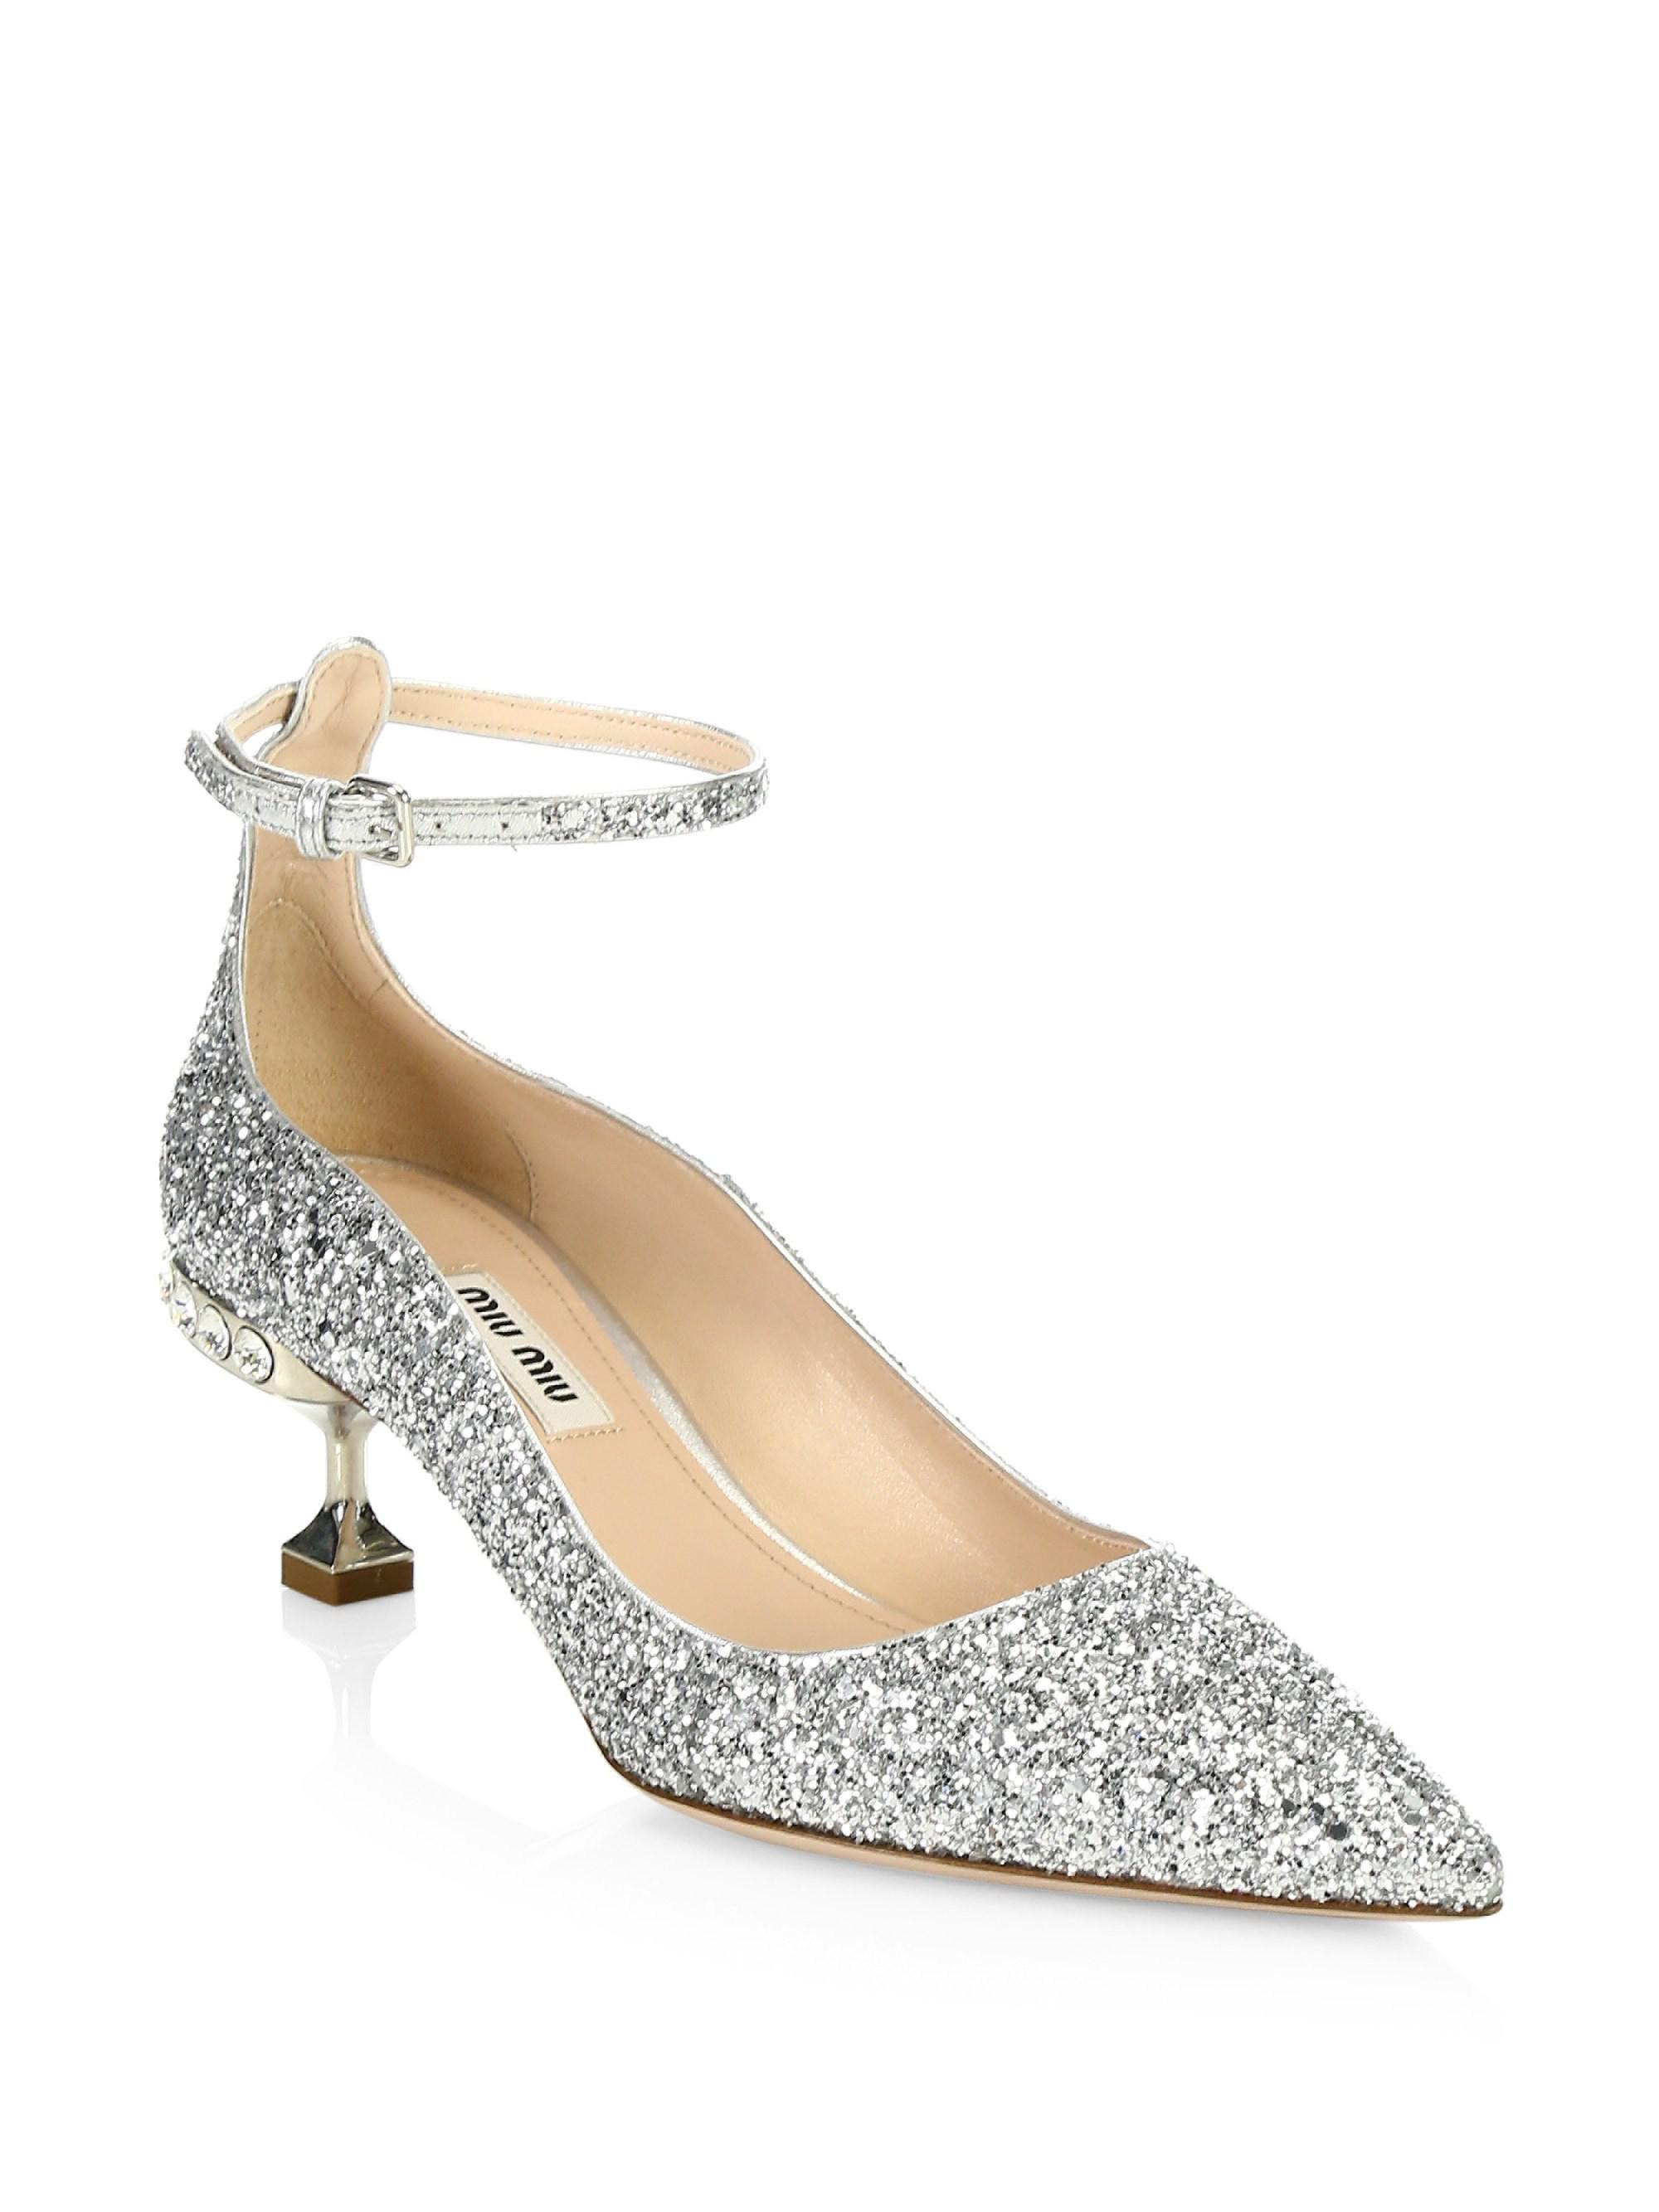 dba141b6b1 Miu Miu Women's Crystal Glitter Ankle-strap Pumps - Silver in ...